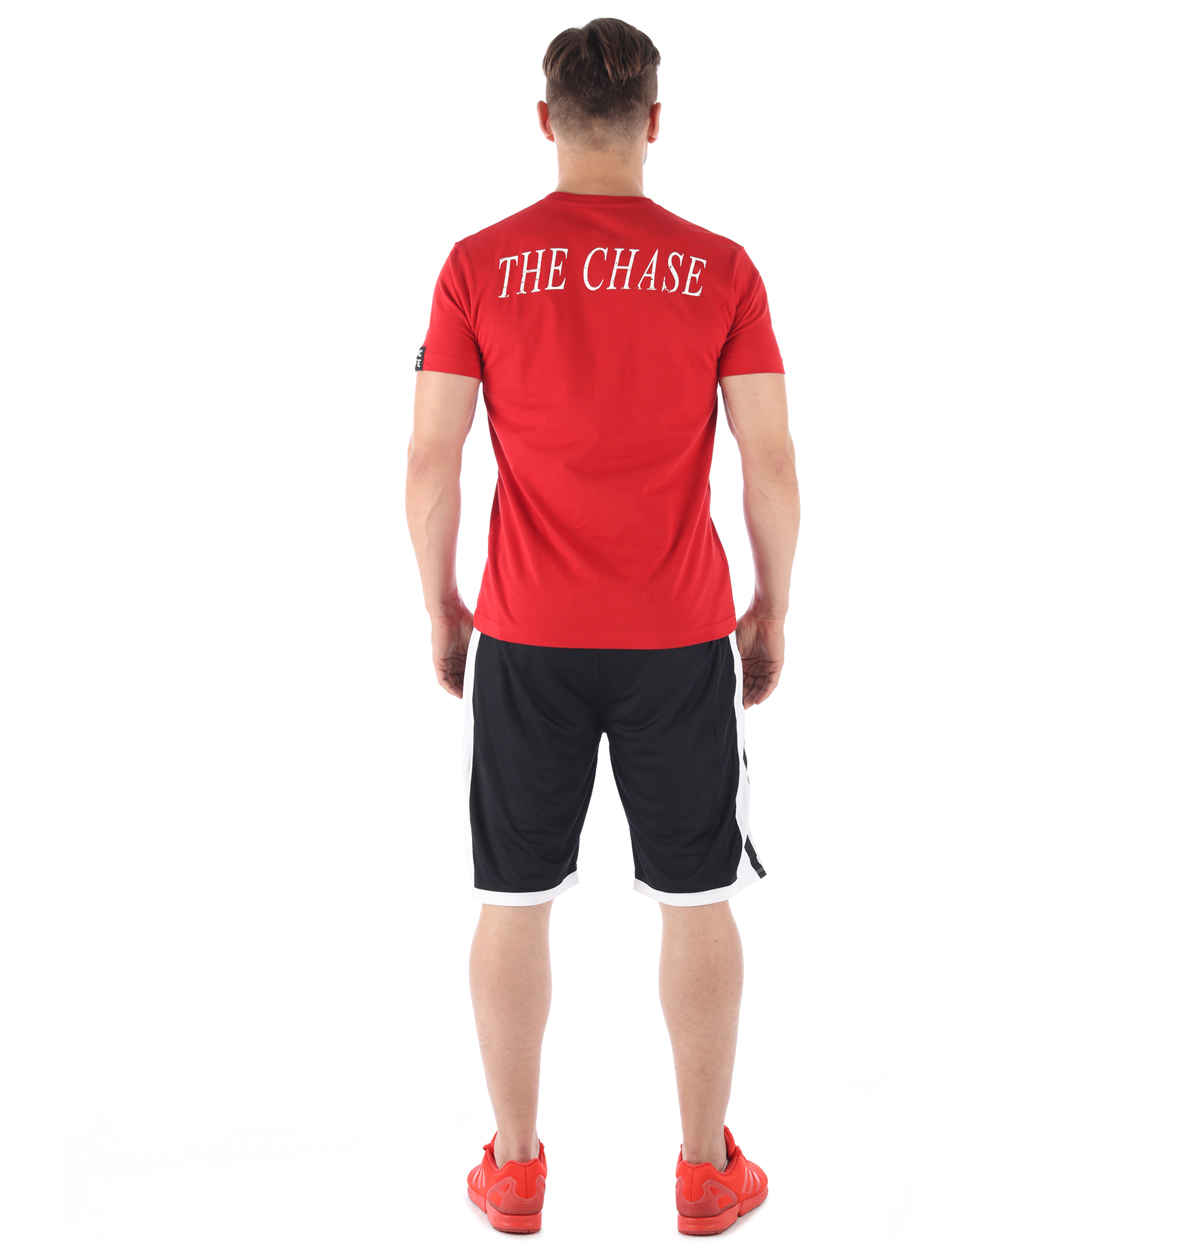 MRNT_THE_CHASE_RED__MBBS_02_BACK.jpg